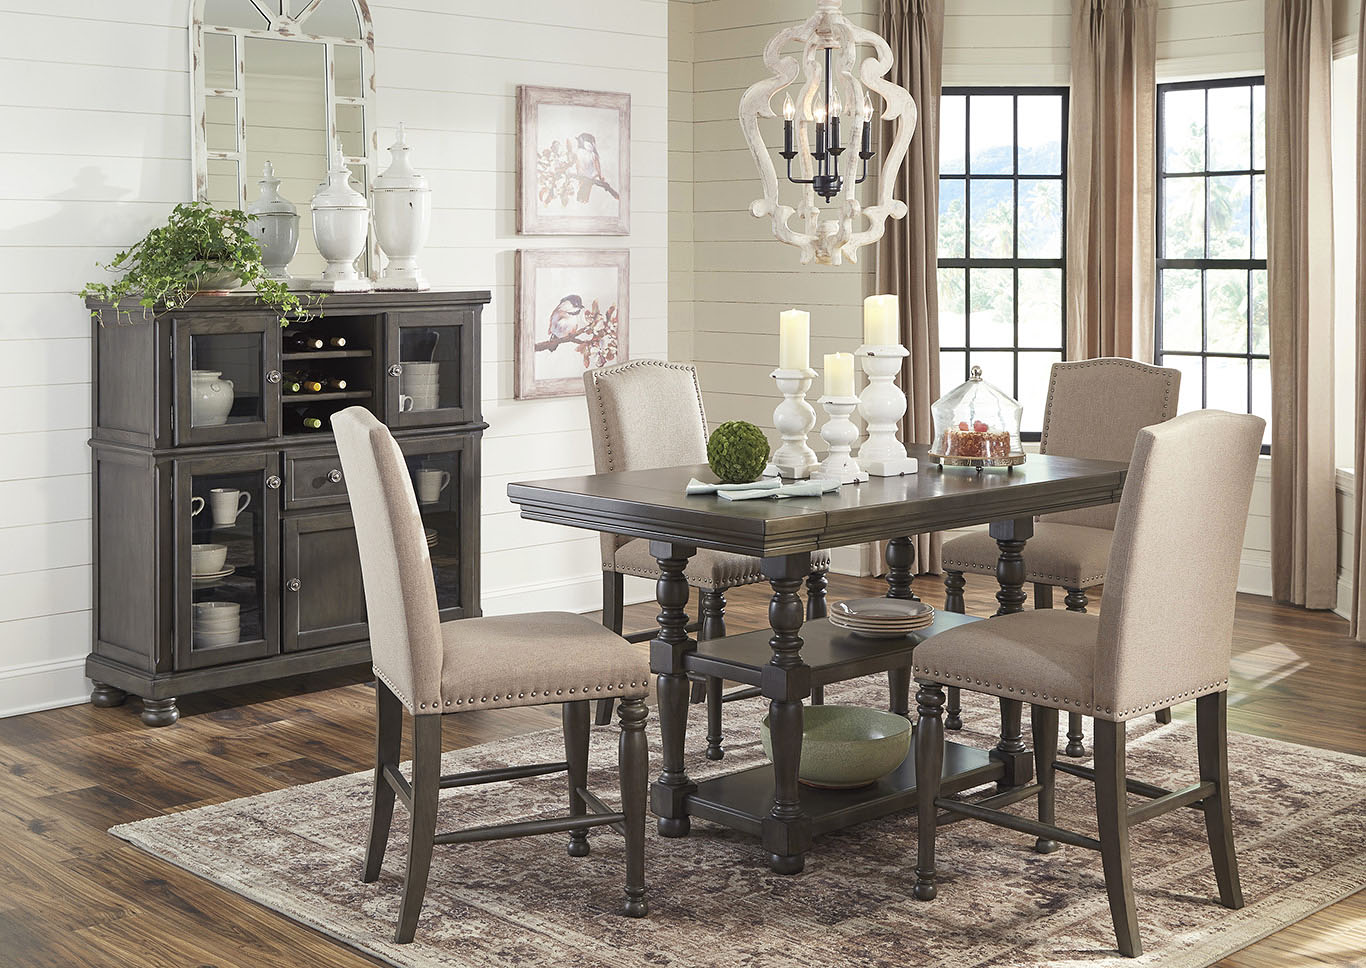 Audberry Dining Set w/4 Bar Stools,Signature Design By Ashley